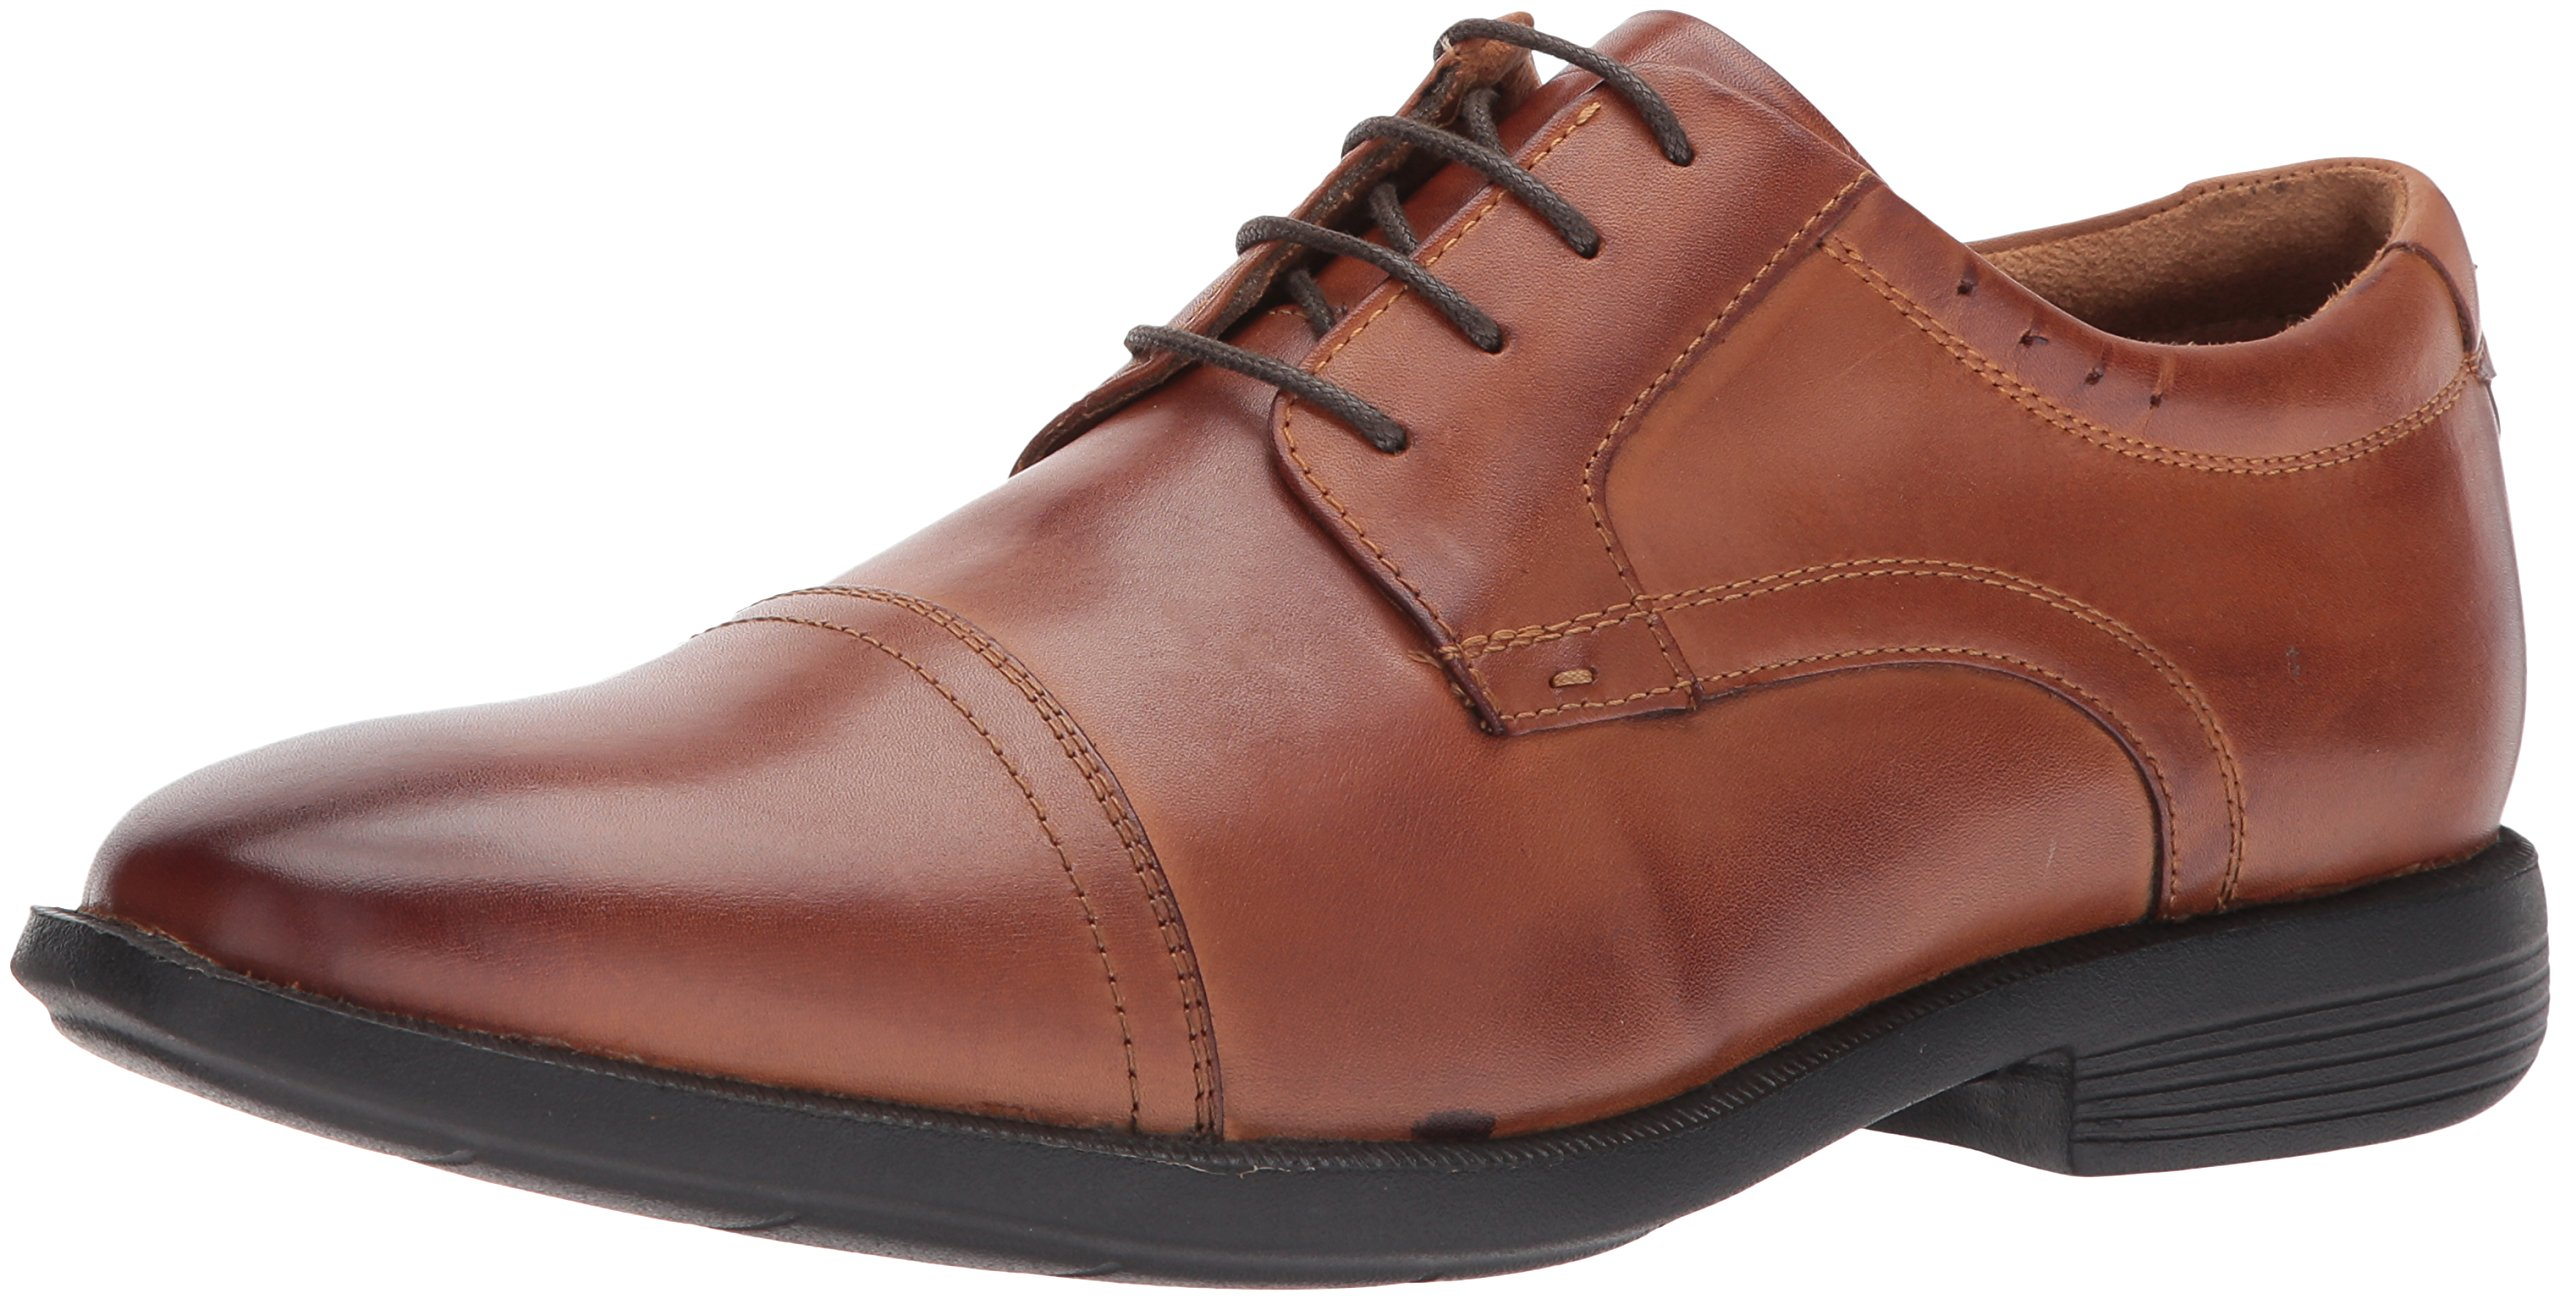 Nunn Bush Men's Dixon Cap Toe Lace up Oxford, Cognac, 8.5 W US